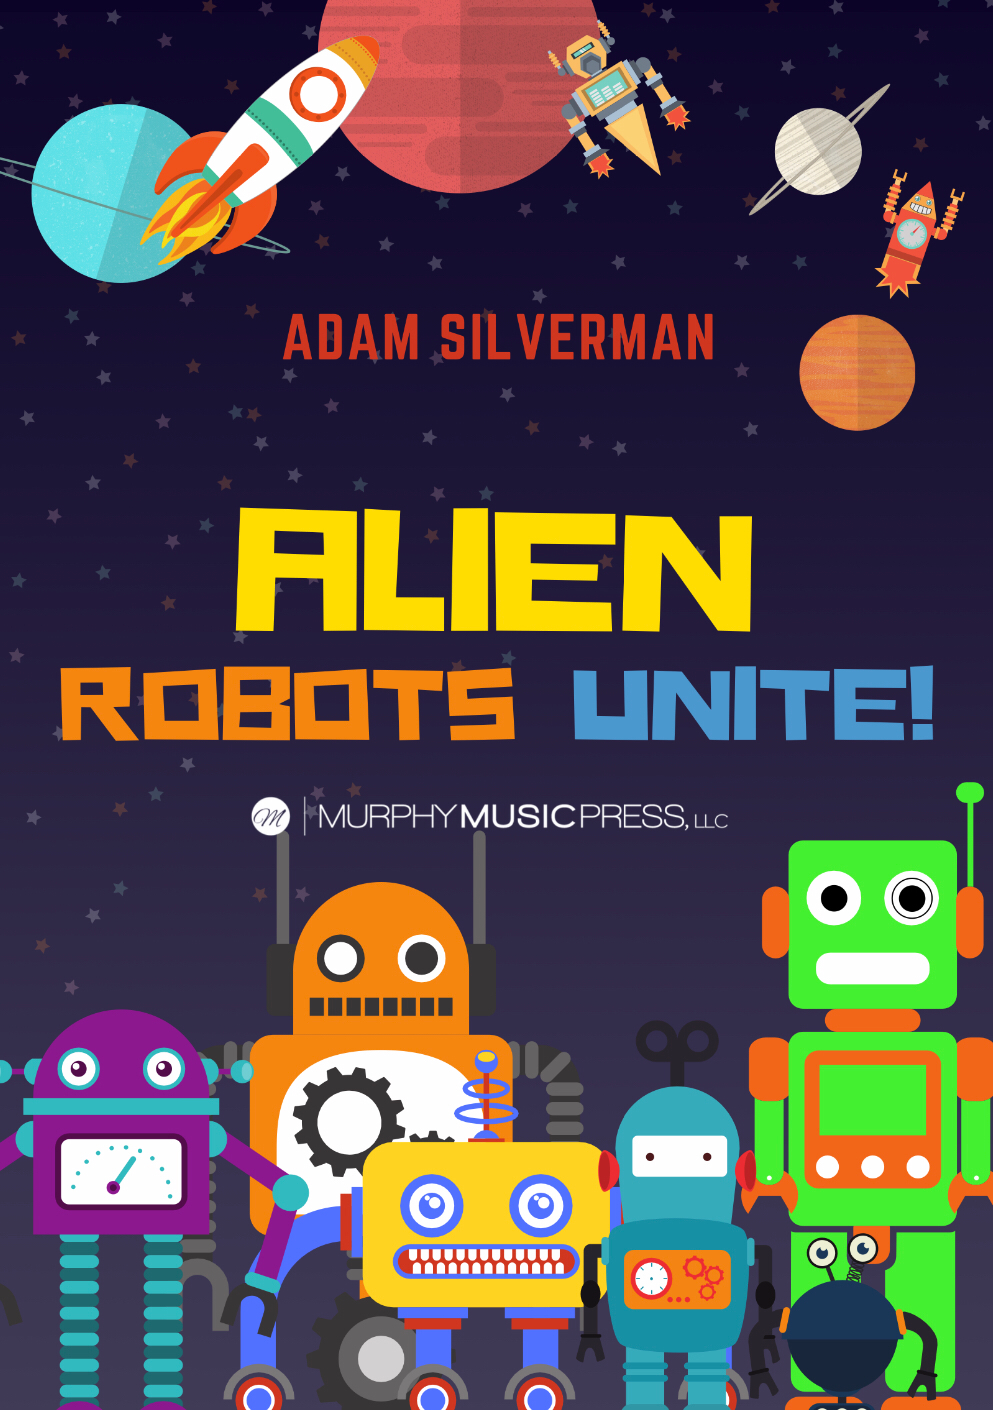 Alien Robots Unite! by Adam Silverman